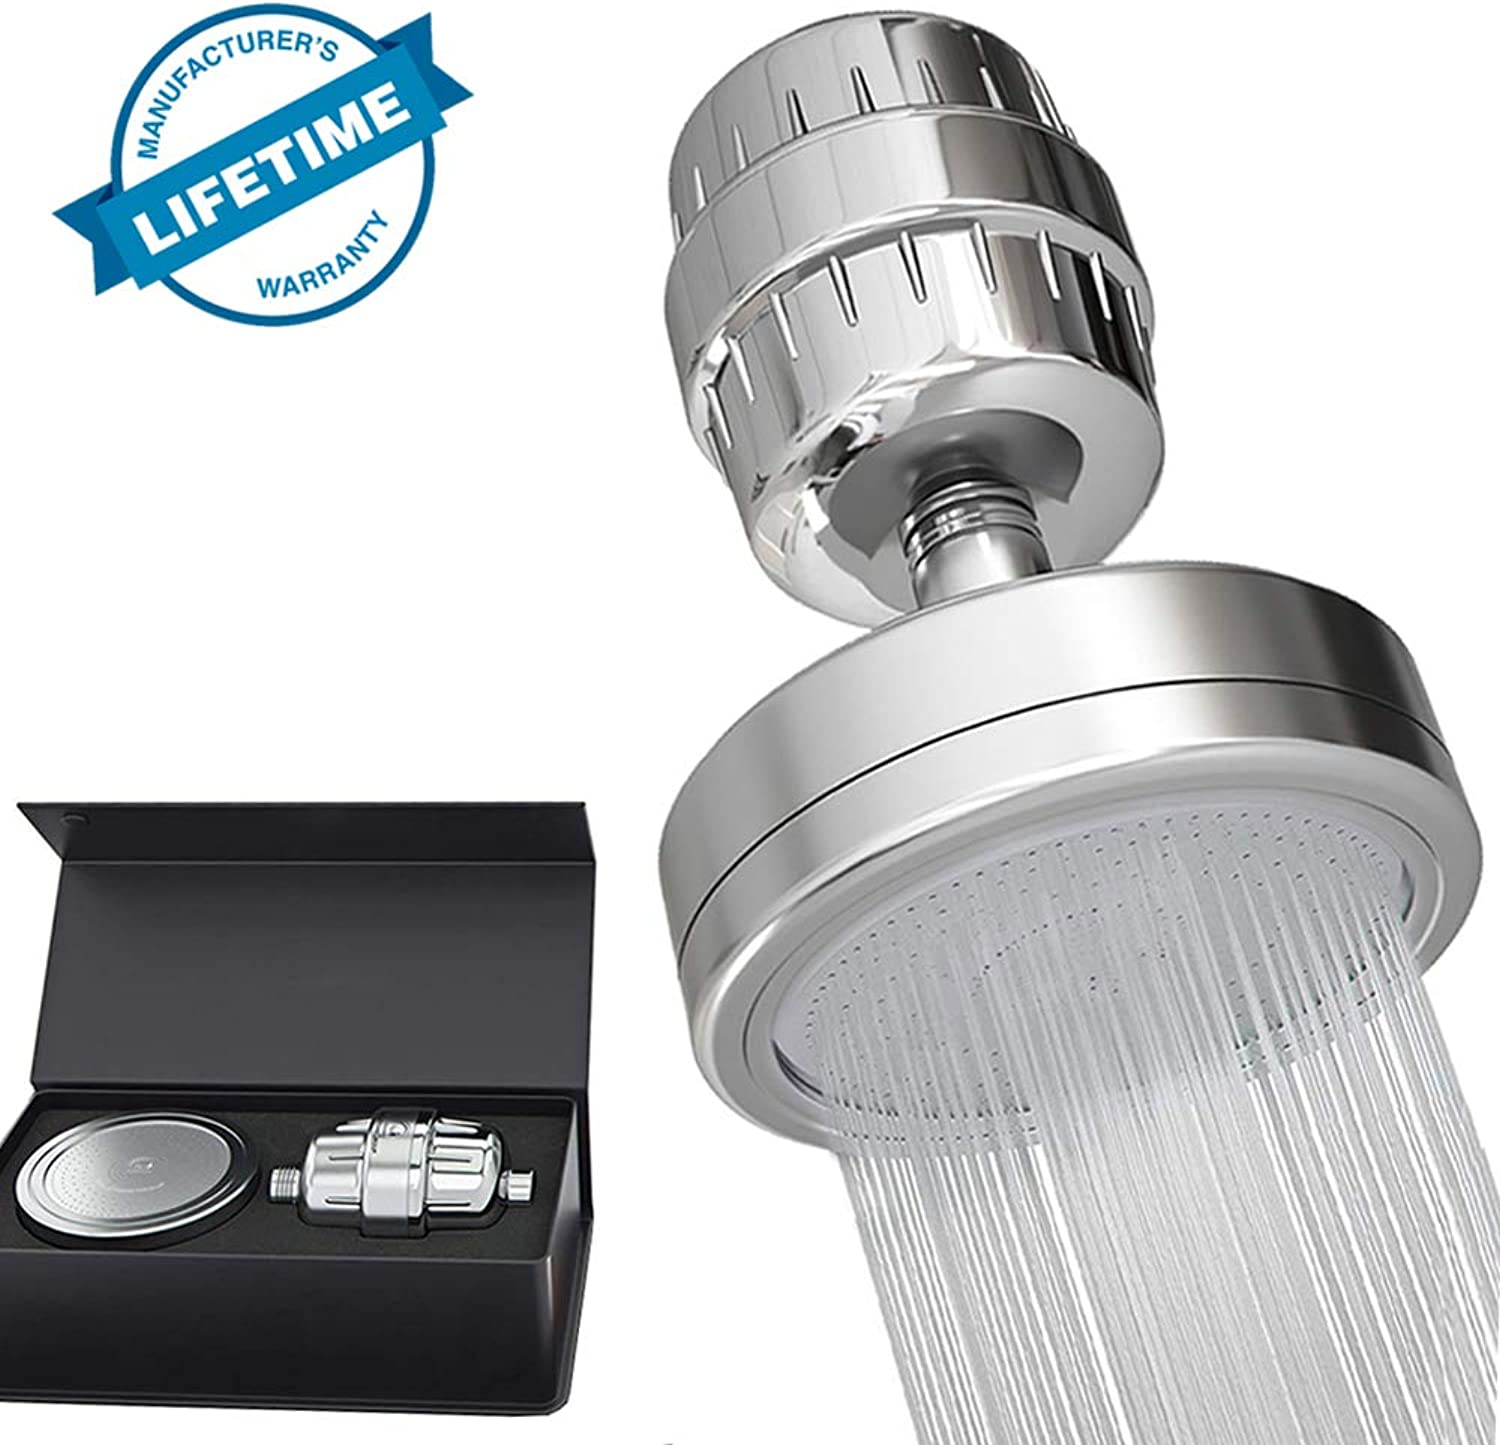 15 Stage Shower Filter and High Pressure Shower Head, Removes Chlorine, Impurities & Unpleasant Odors, High Output Universal Shower Replaceable Multi Stage Filter Cartridge